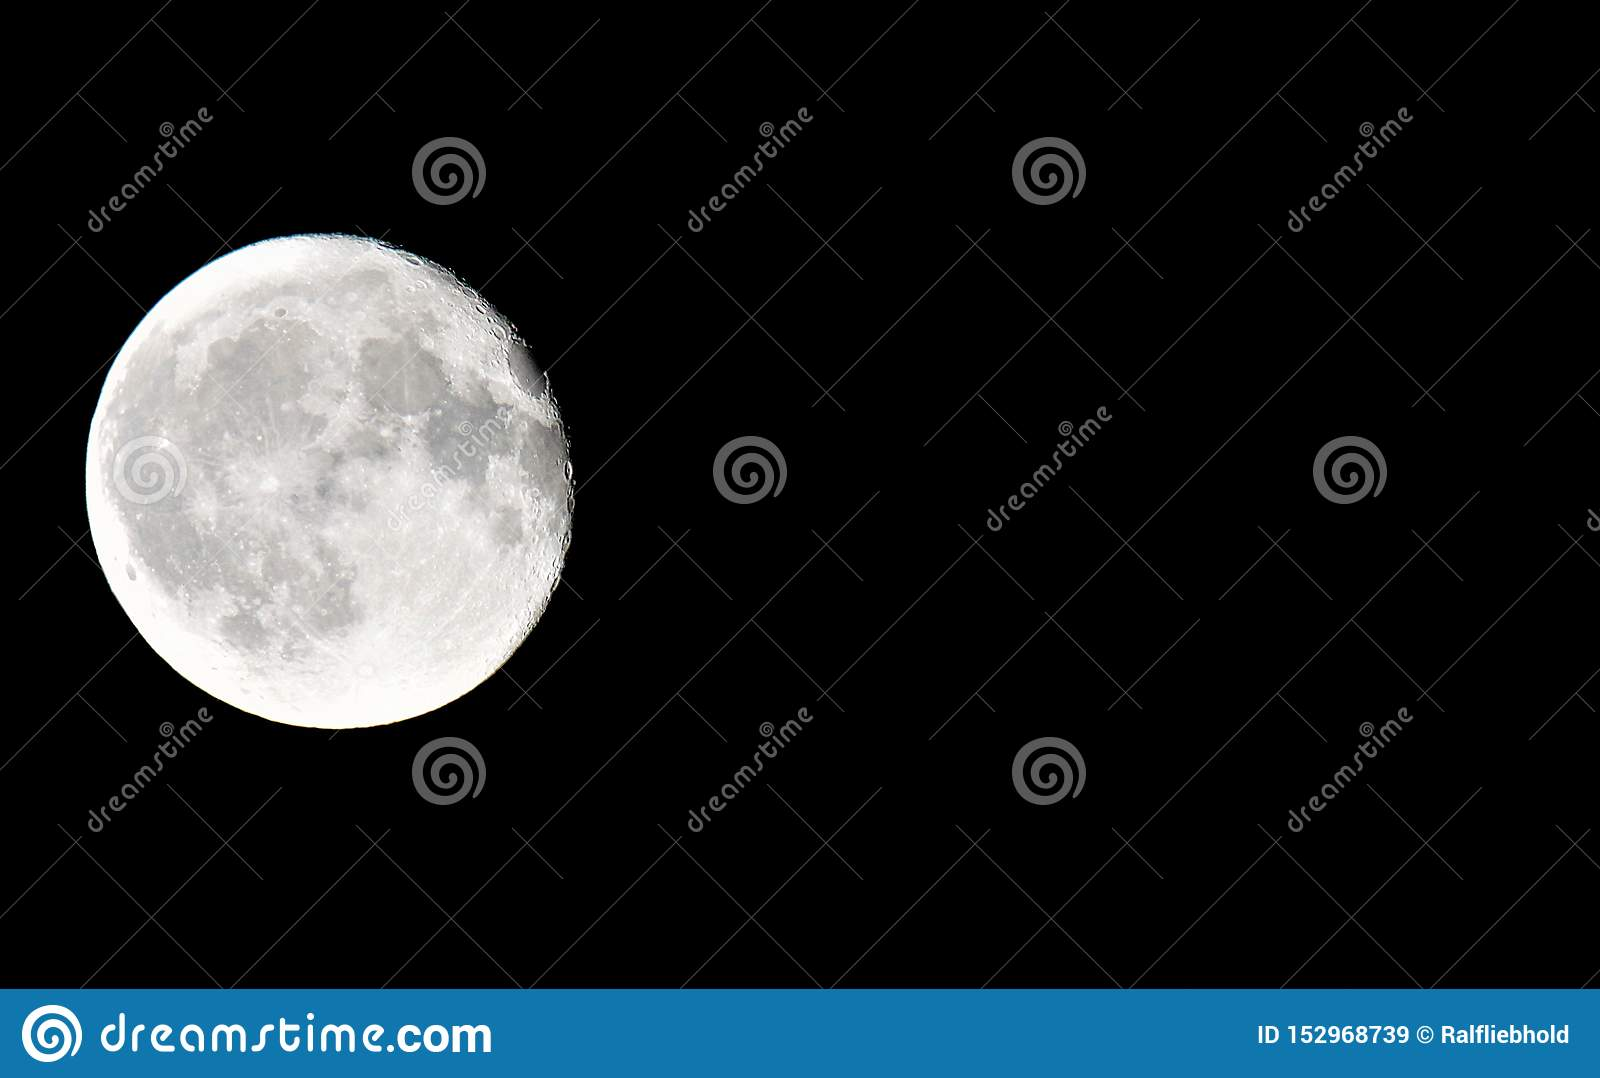 Close up of full moon with black background on left side of photo with copy space